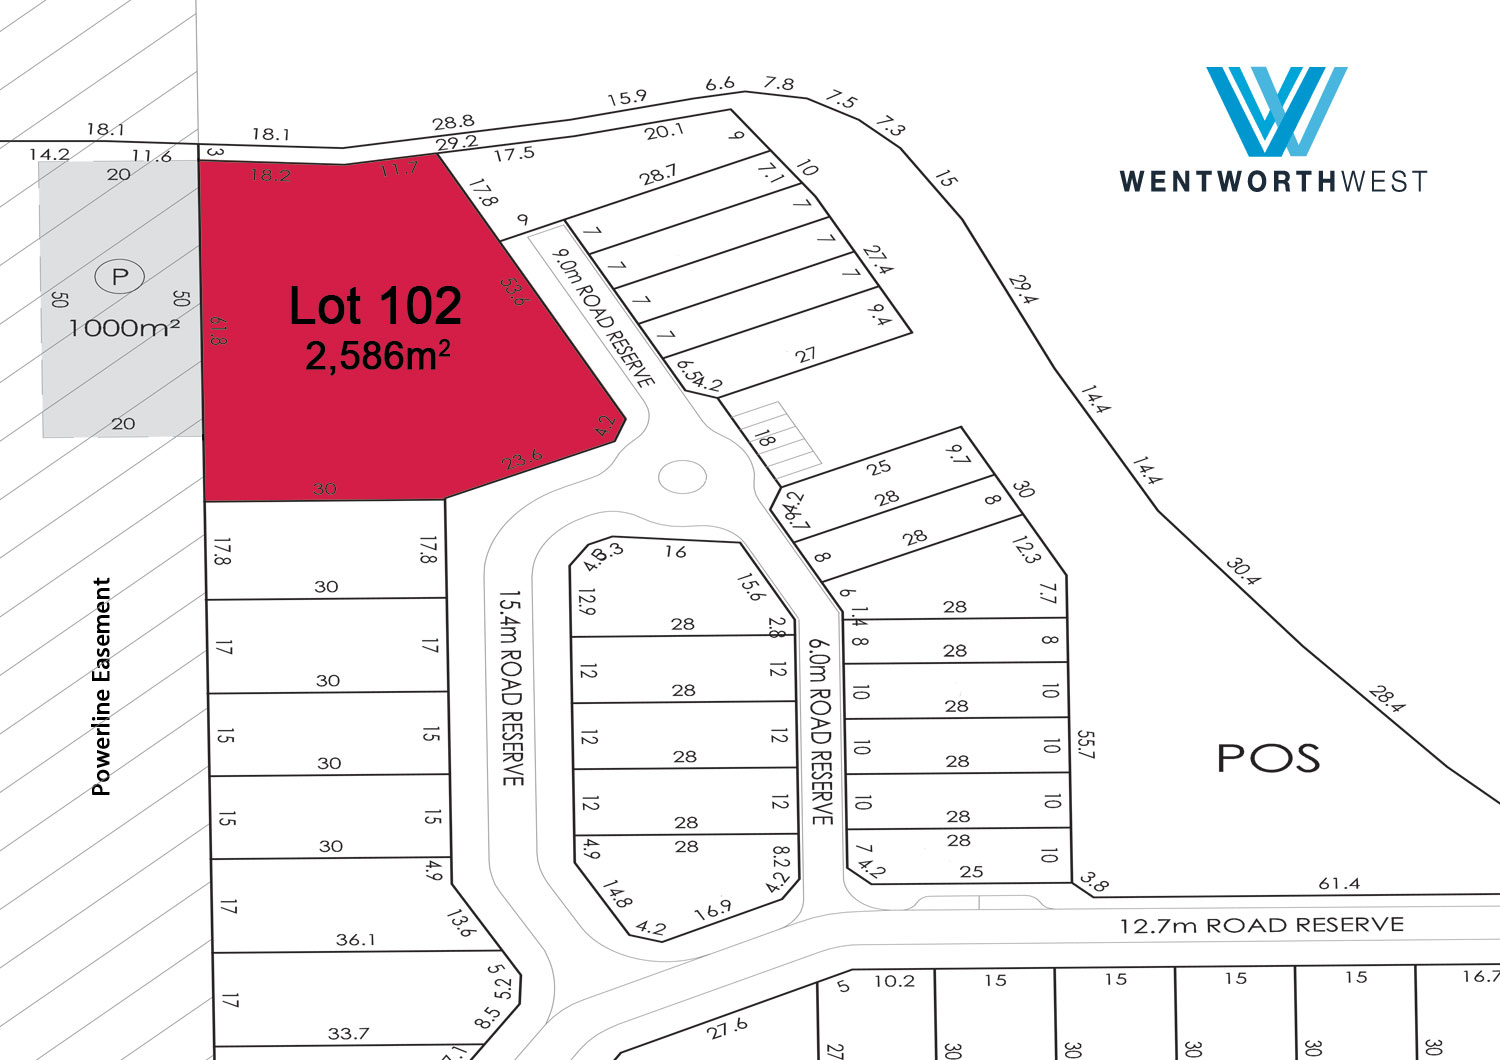 Wentworth West Lot 102 Plan